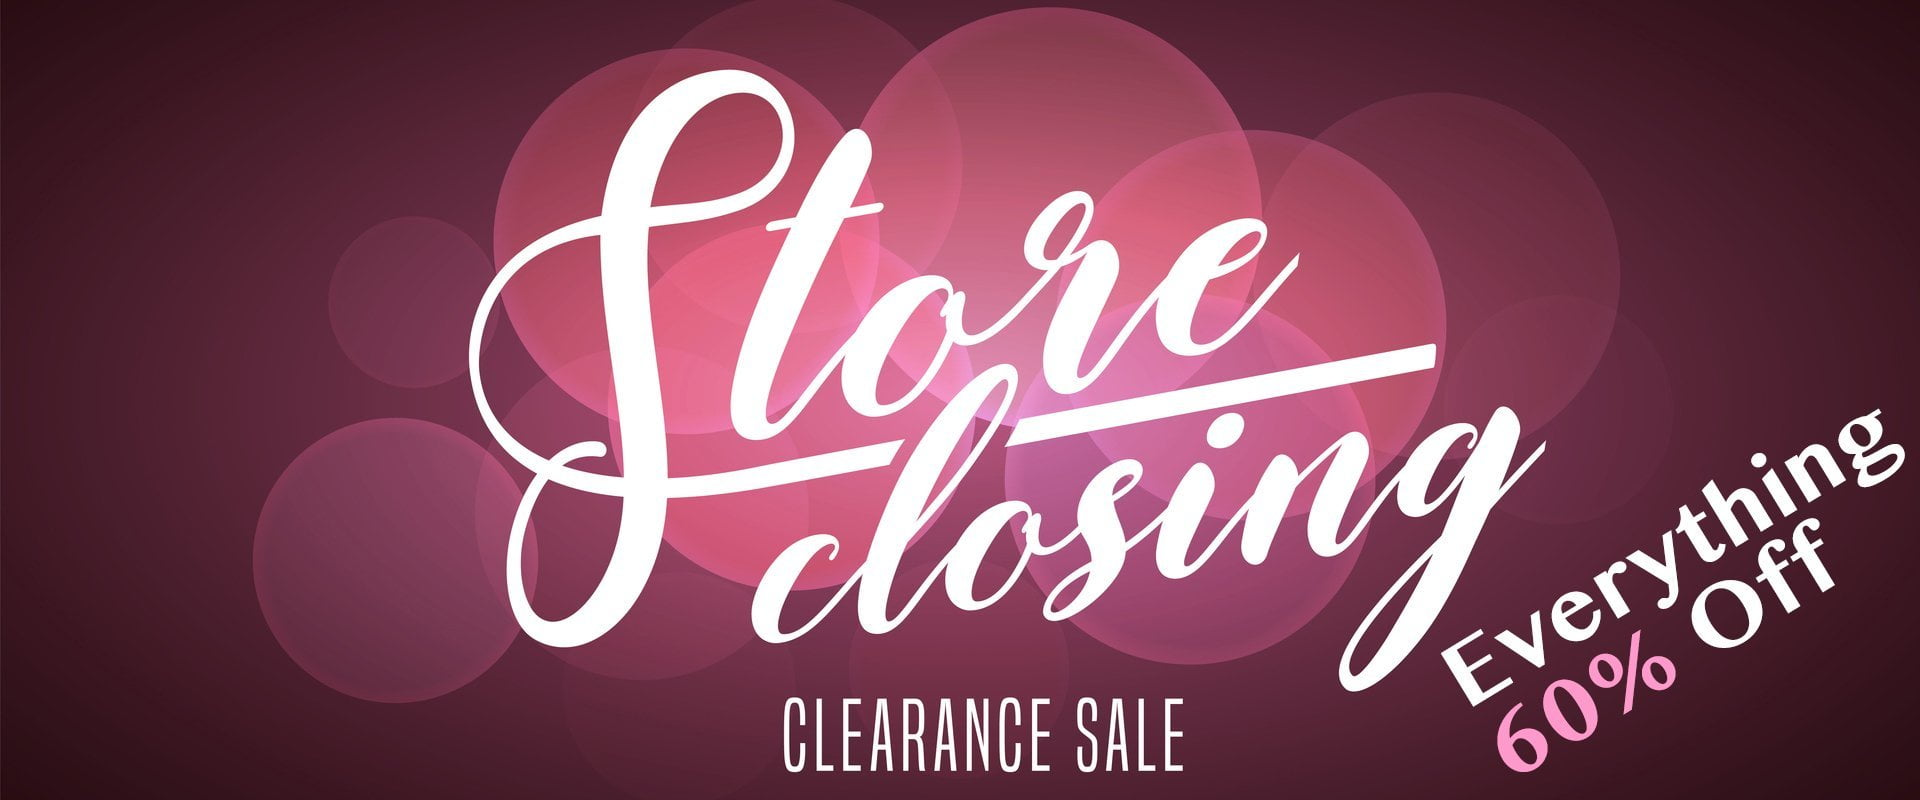 Stock Clearance Sale 50%